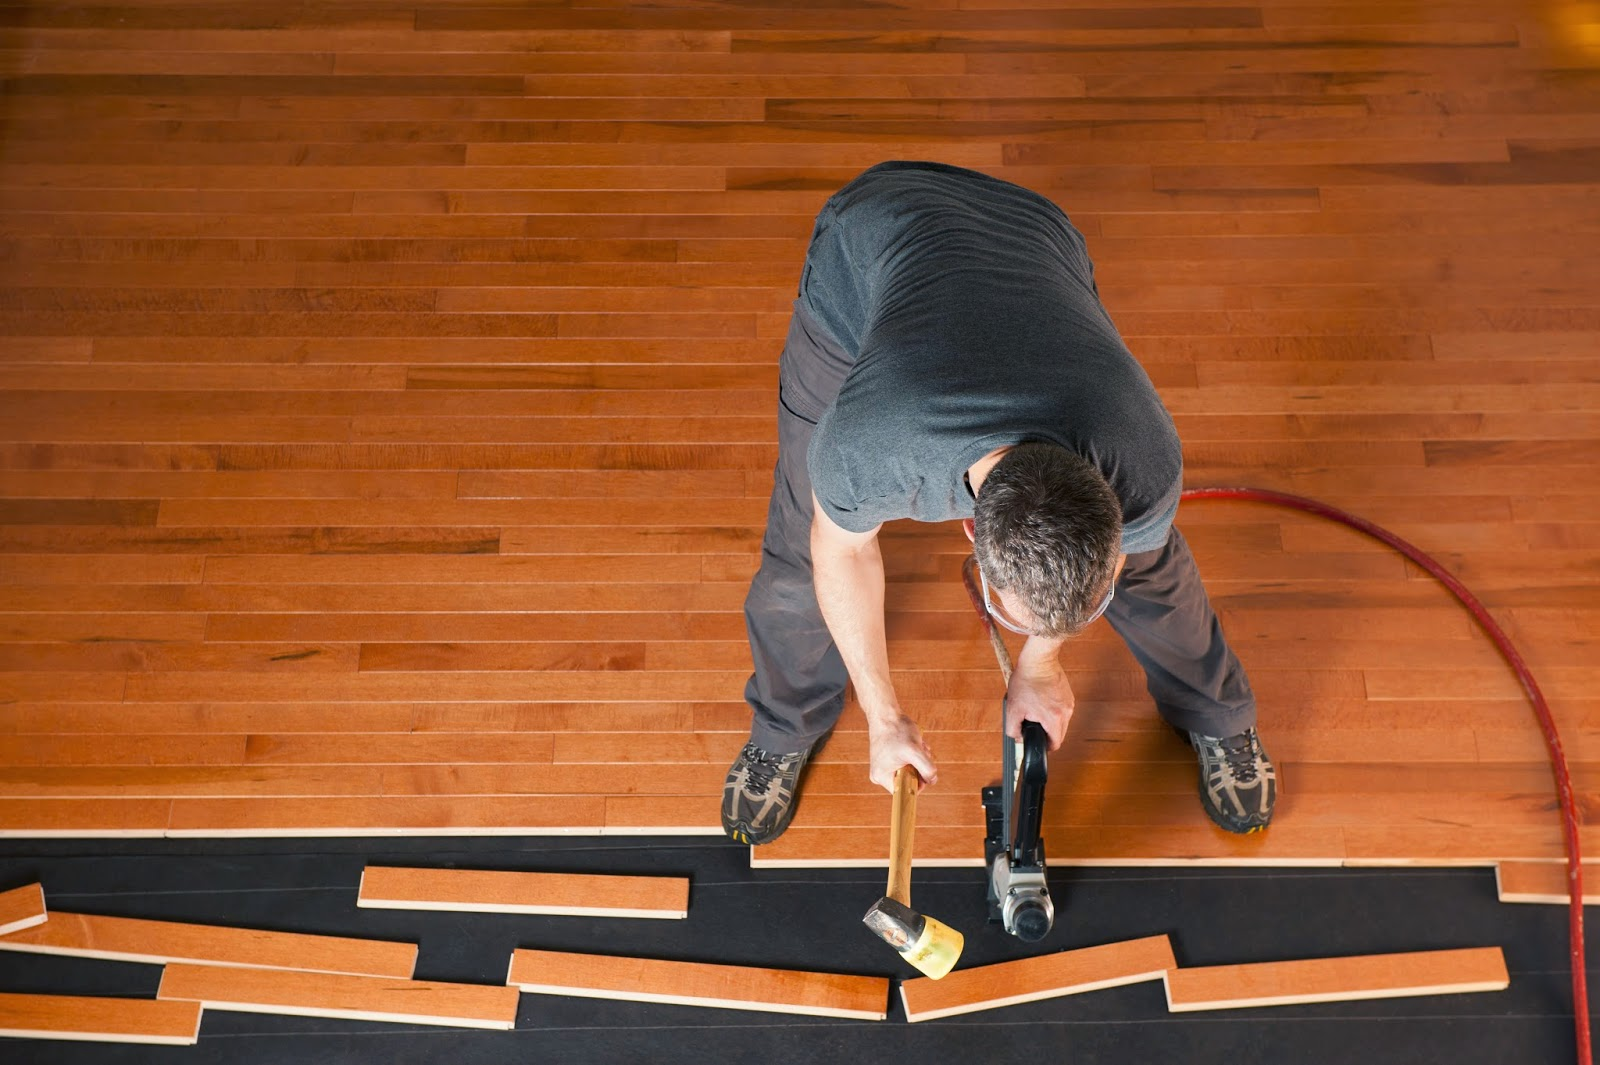 One Of The Most Complicated Yet Rewarding Home Improvement Projects Is  Finishing A Hardwood Floor. A Newly Finished Hardwood ...